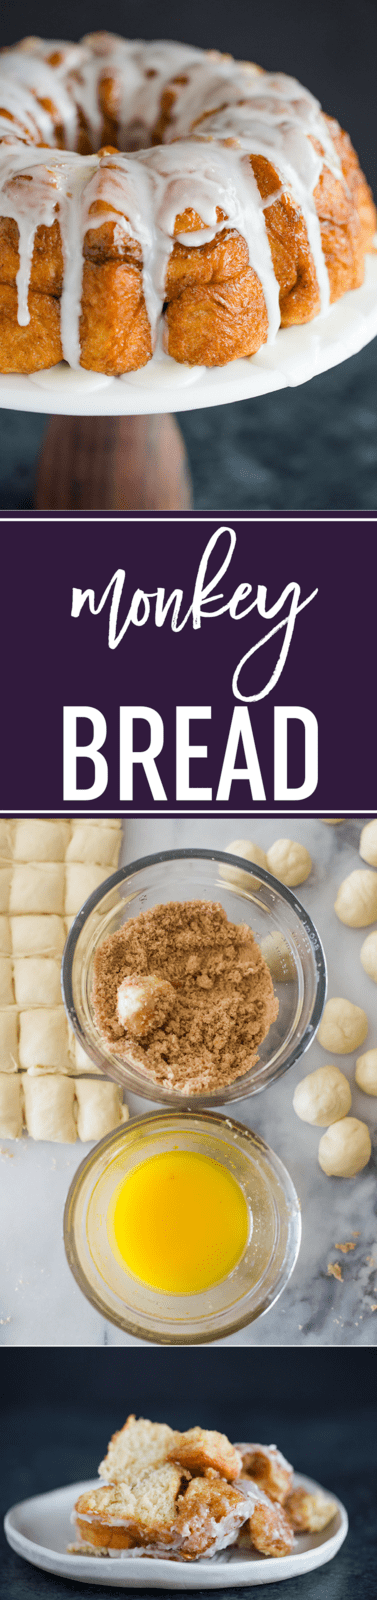 Monkey Bread FROM SCRATCH! :: A completely homemade version of monkey bread - no canned biscuit dough here! #homemade #recipe #monkeybread #brunchrecipe